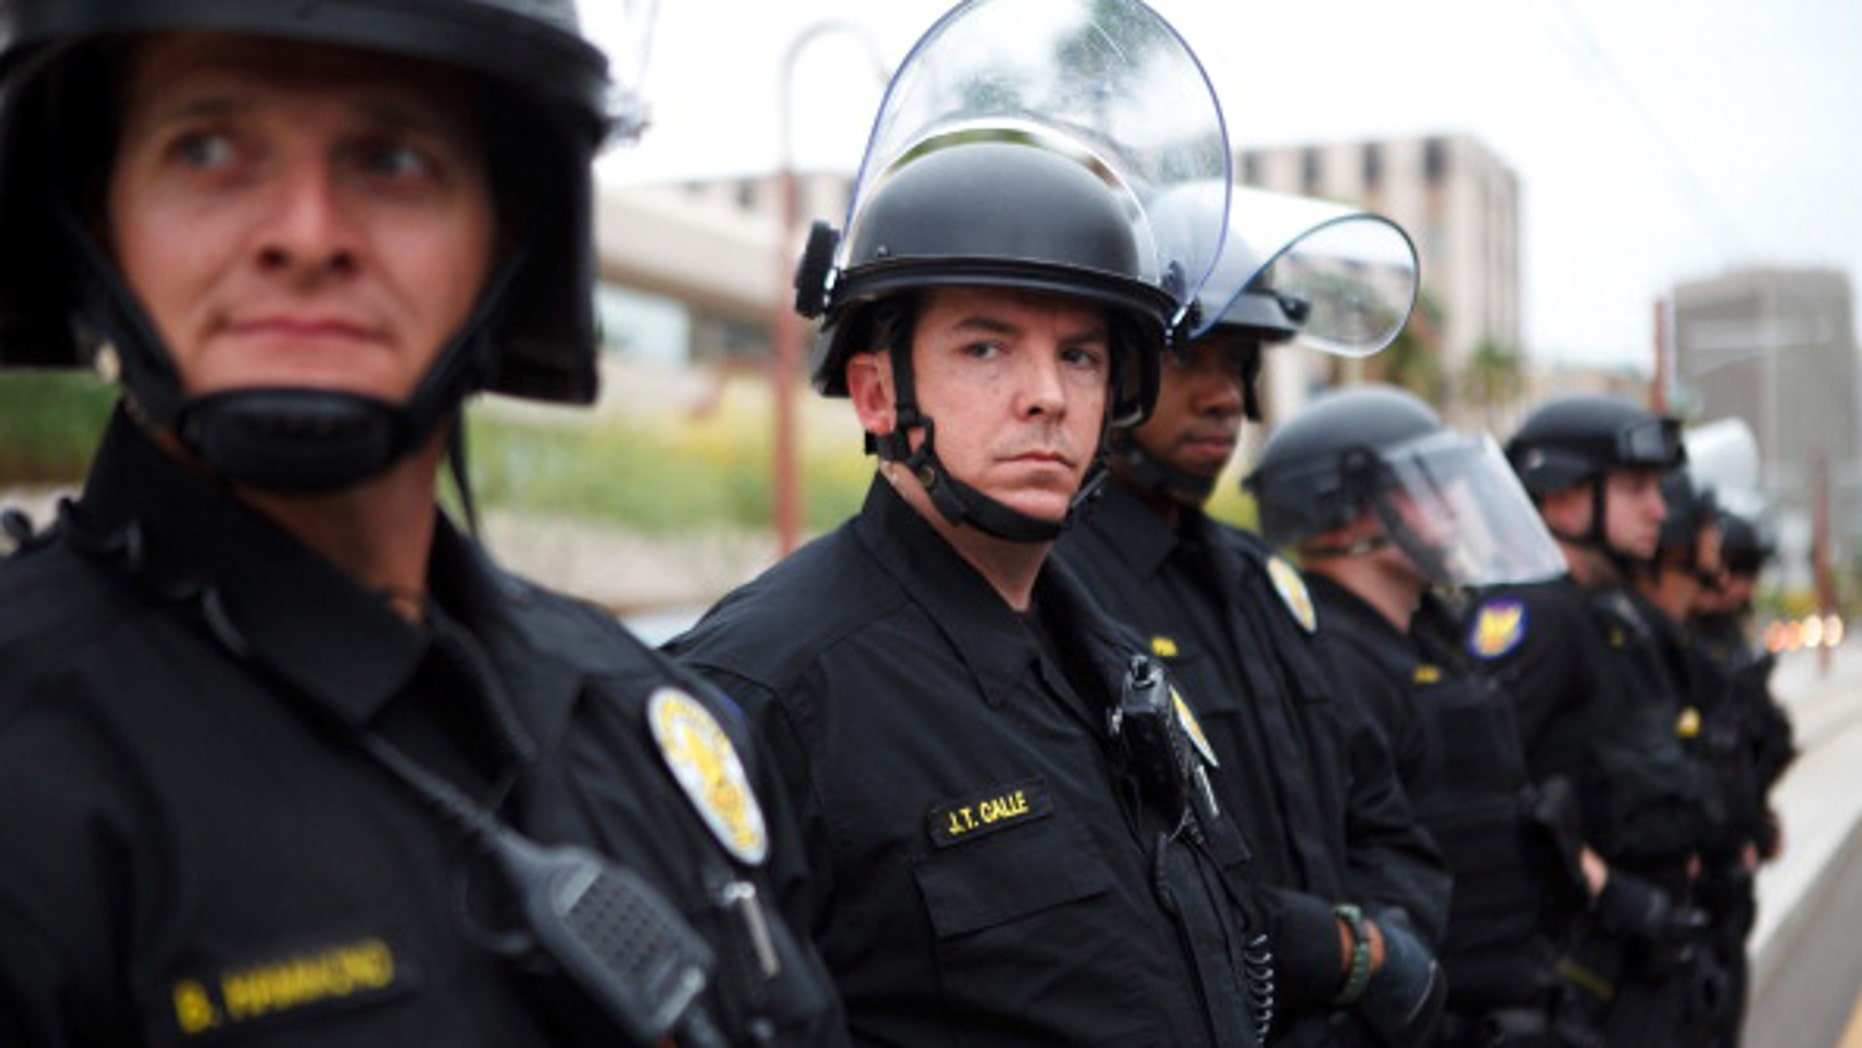 PHOENIX, AZ - APRIL 25:  Police officers look on as protester opposed to Arizona's Immigration Law SB 1070 rally April 25, 2012 in Phoenix, Arizona. Immigrant rights advocates held a day of protest in Phoenix, the same day the U.S. Supreme Court heard arguments over Arizona's 2010 immigration enforcement law. (Photo by Jonathan Gibby/Getty Images)